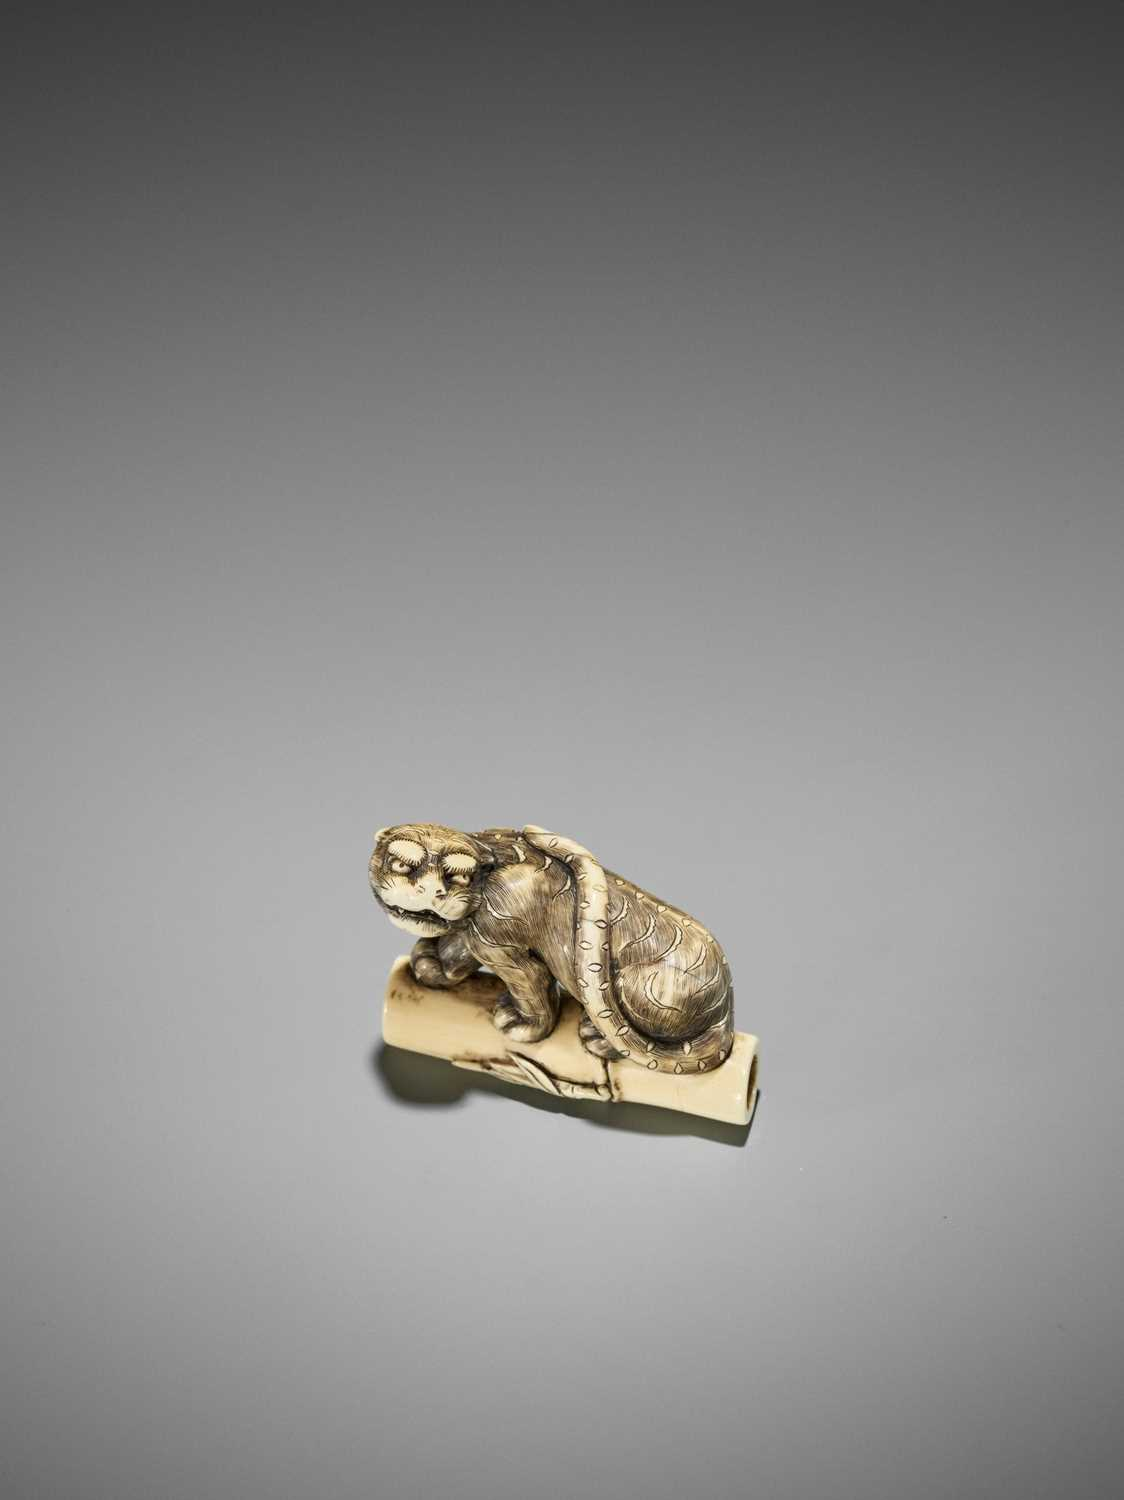 Lot 66-AN EXCELLENT KYOTO SCHOOL IVORY NETSUKE OF A TIGER ON BAMBOO